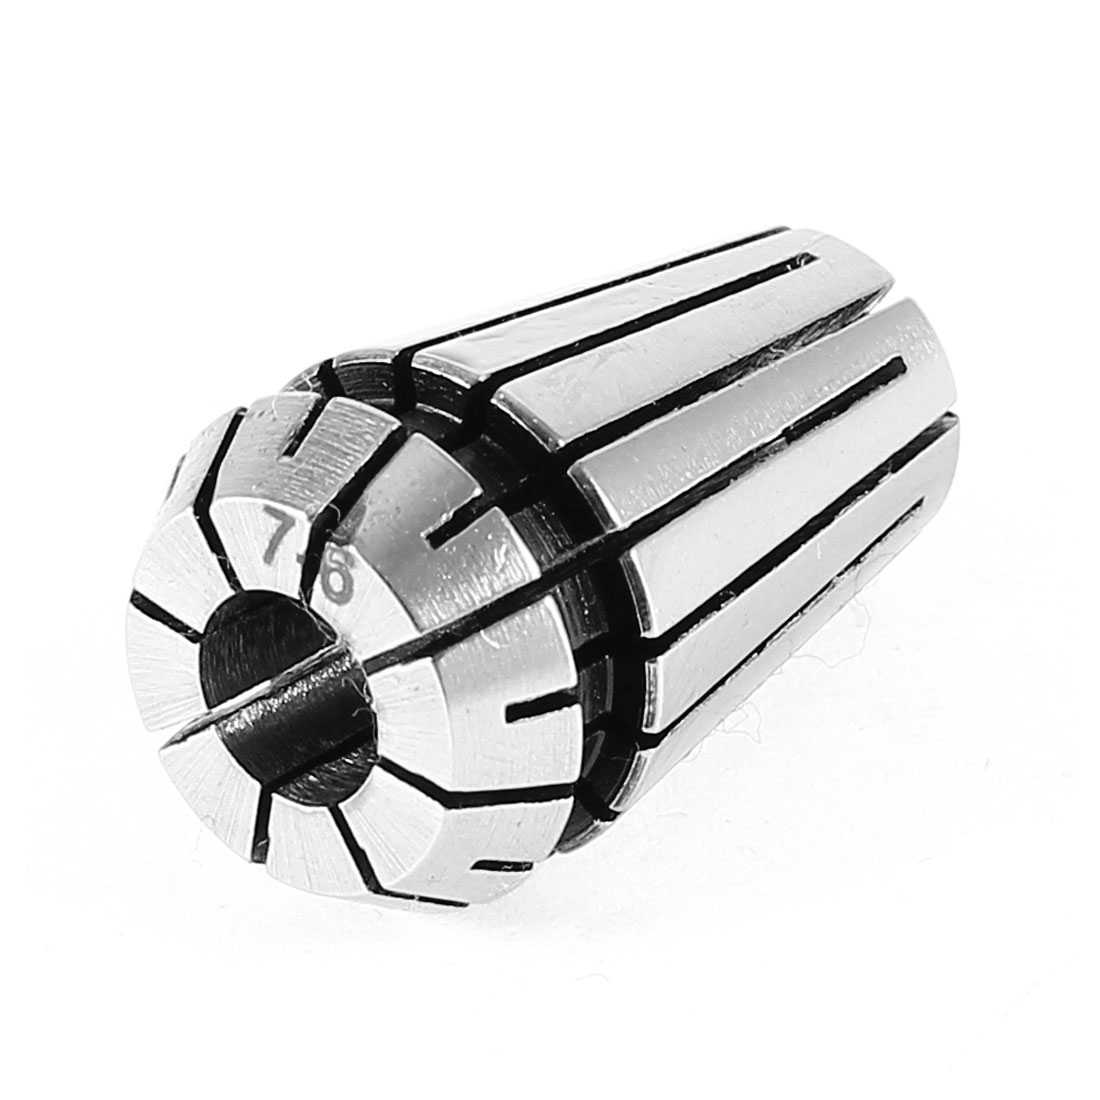 Unique Bargains 7-6mm 0.28'-0.24' ER-16 Spring Collet for CNC Milling Lathe Engraving Machine